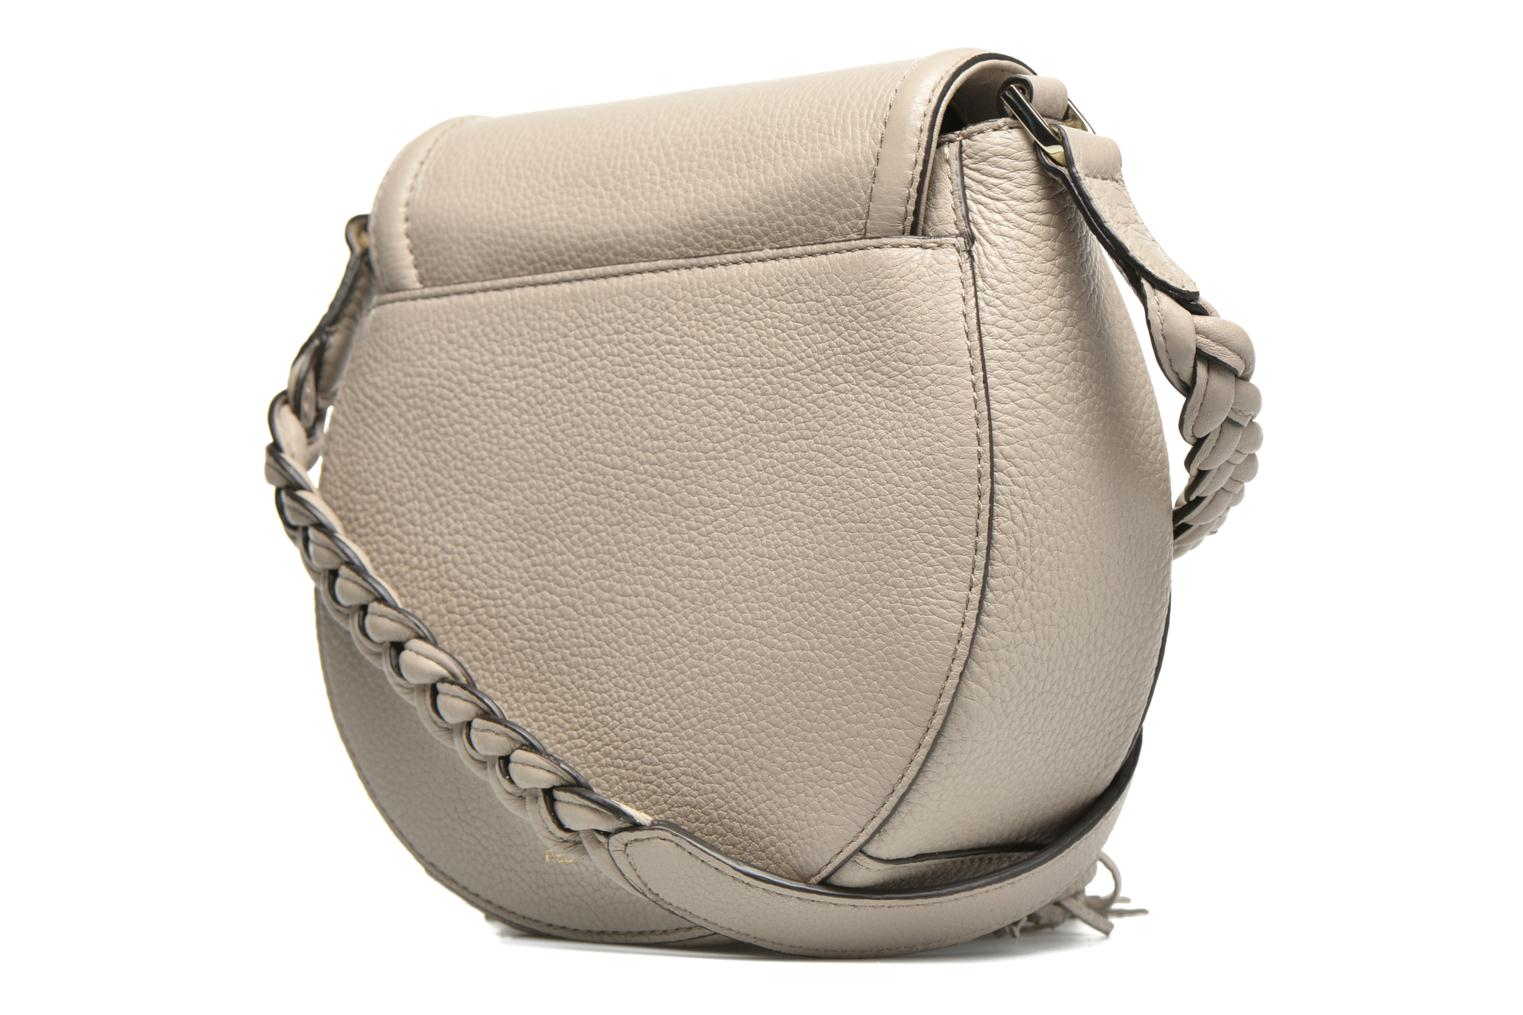 Isobel crossbody Khaki - Light Gold